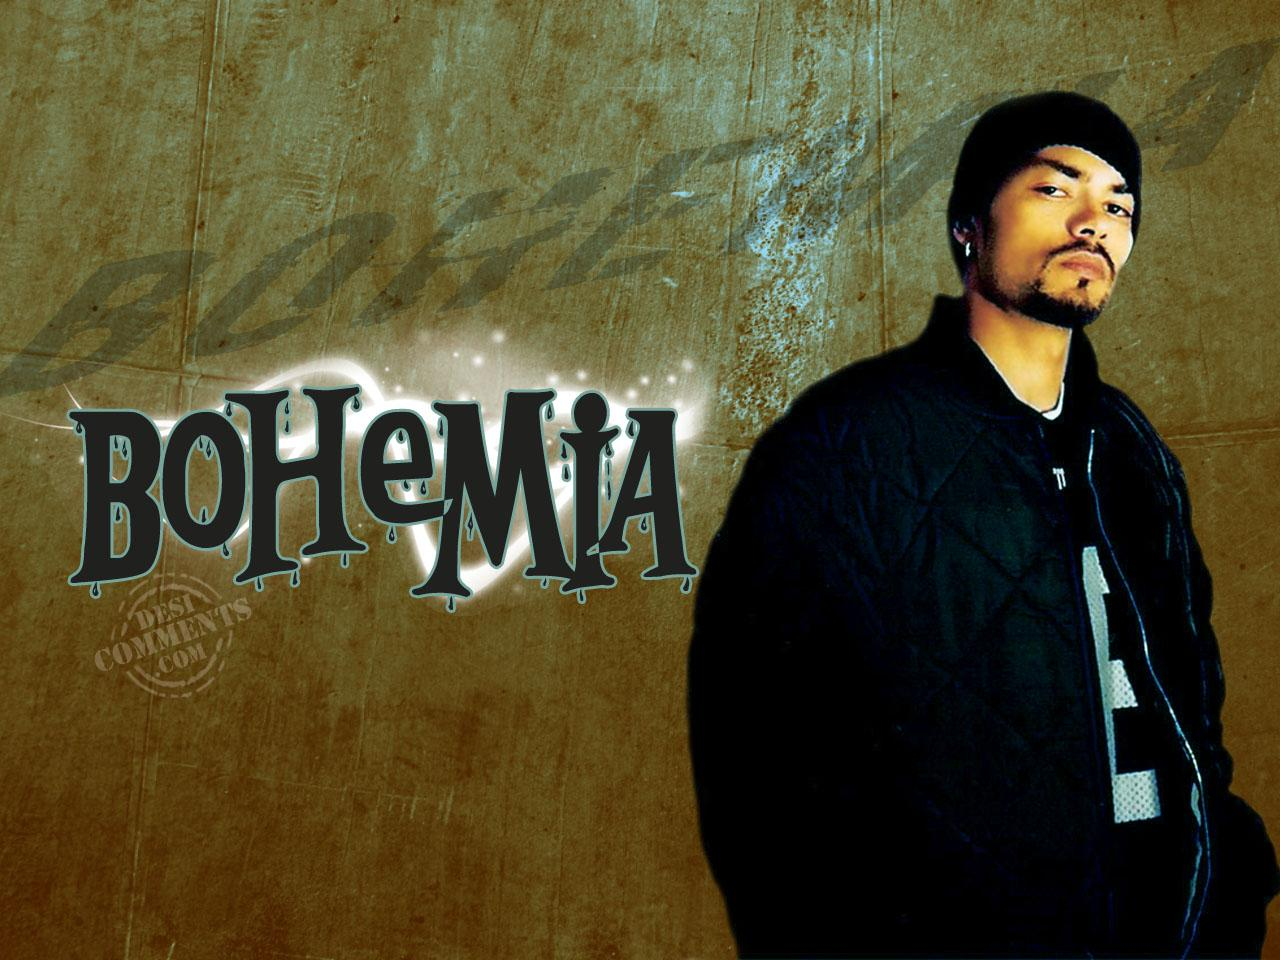 BOHEMIA THE RAP STAR: August 2011